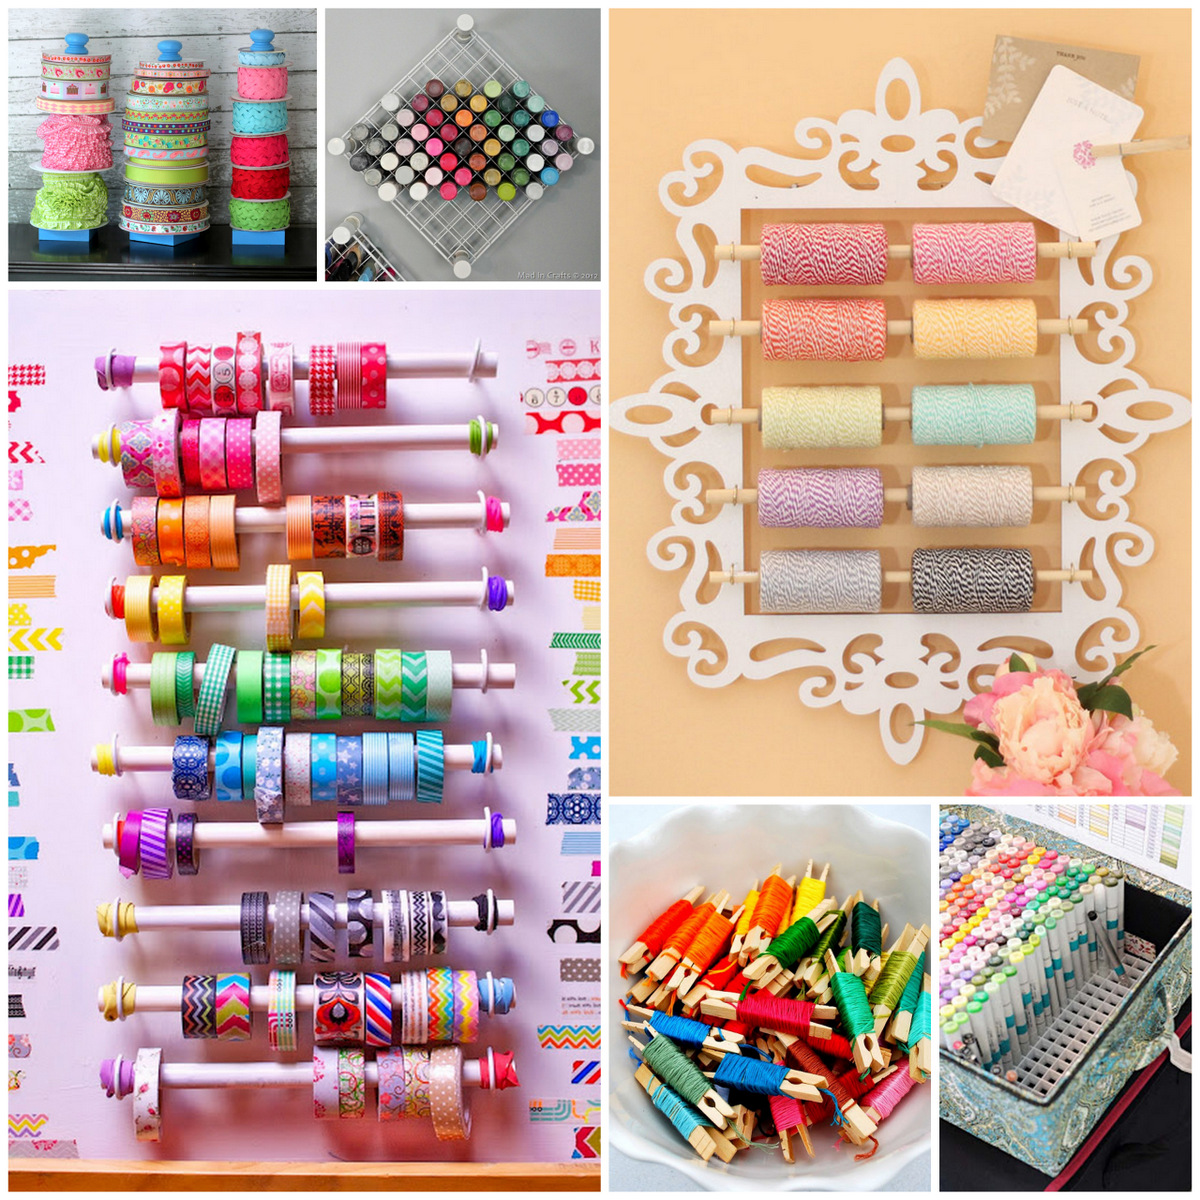 Creativity unmasked six for saturday or sunday diy craft Homemade craft storage ideas